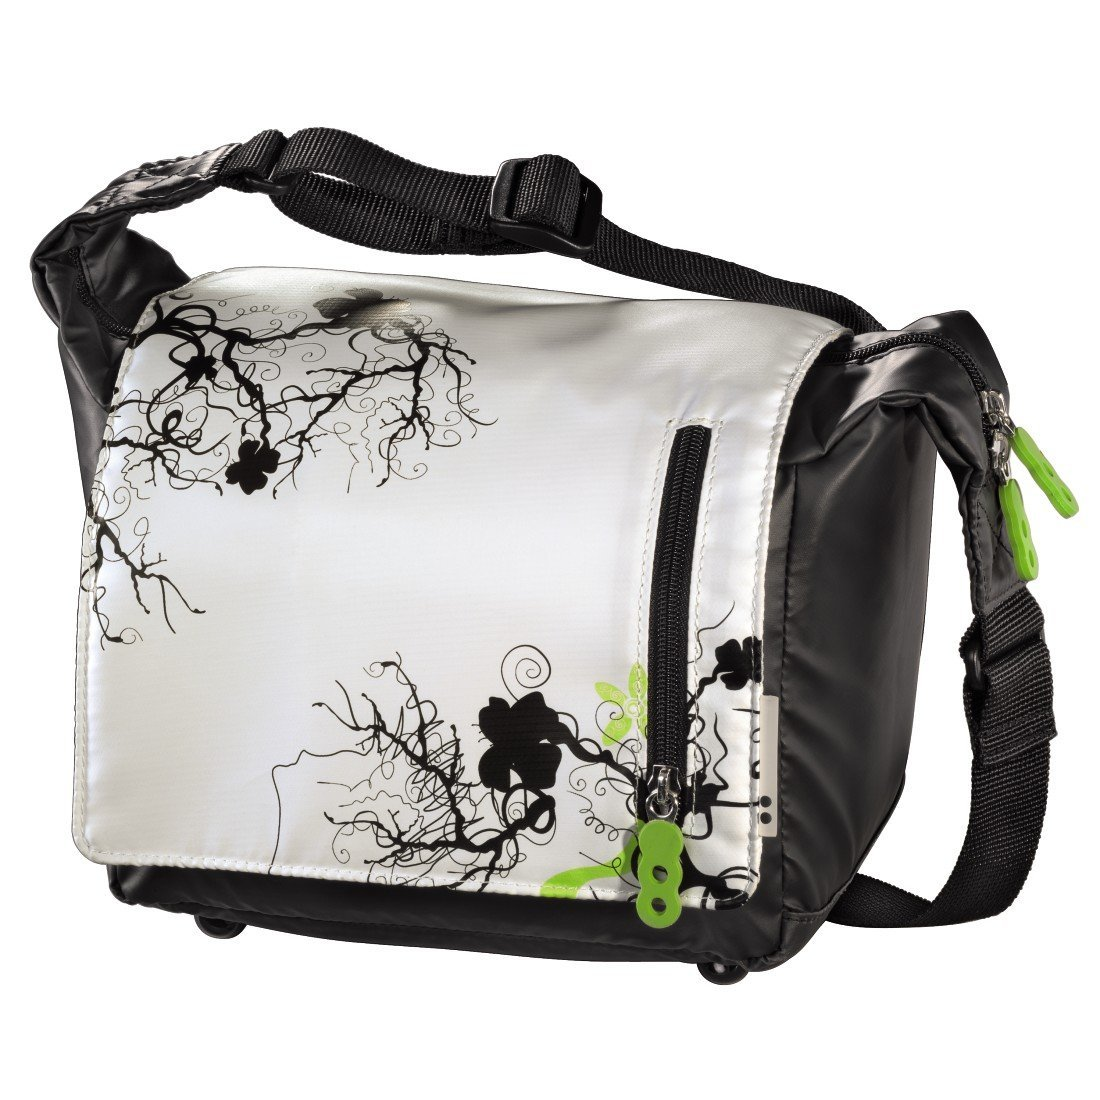 Best school bags for college students - One Side College Bags